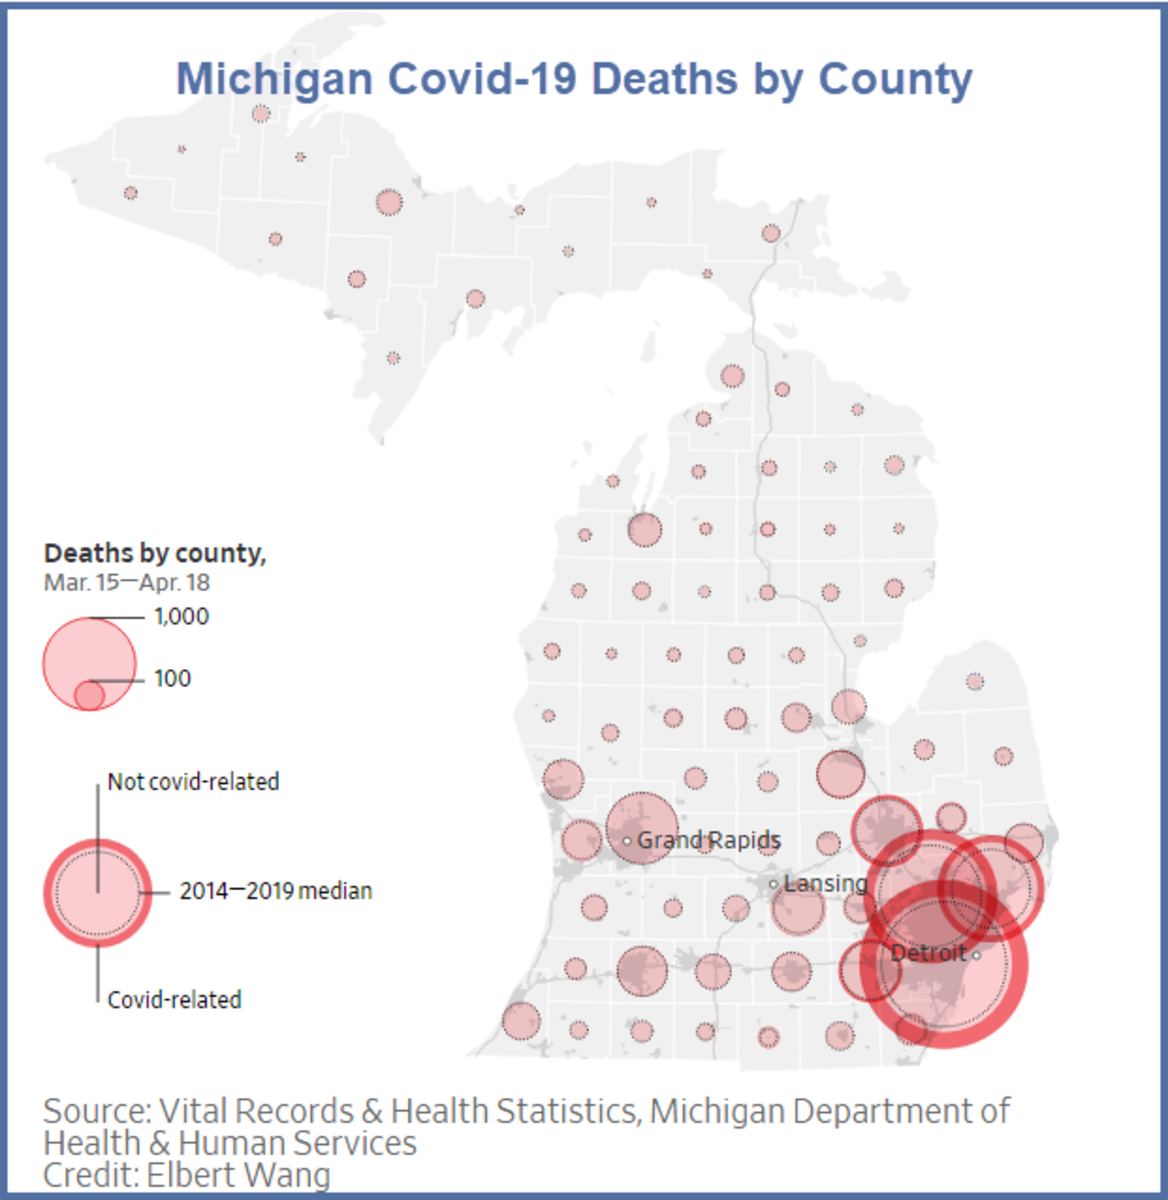 Michigan Covid-19 Deaths by County